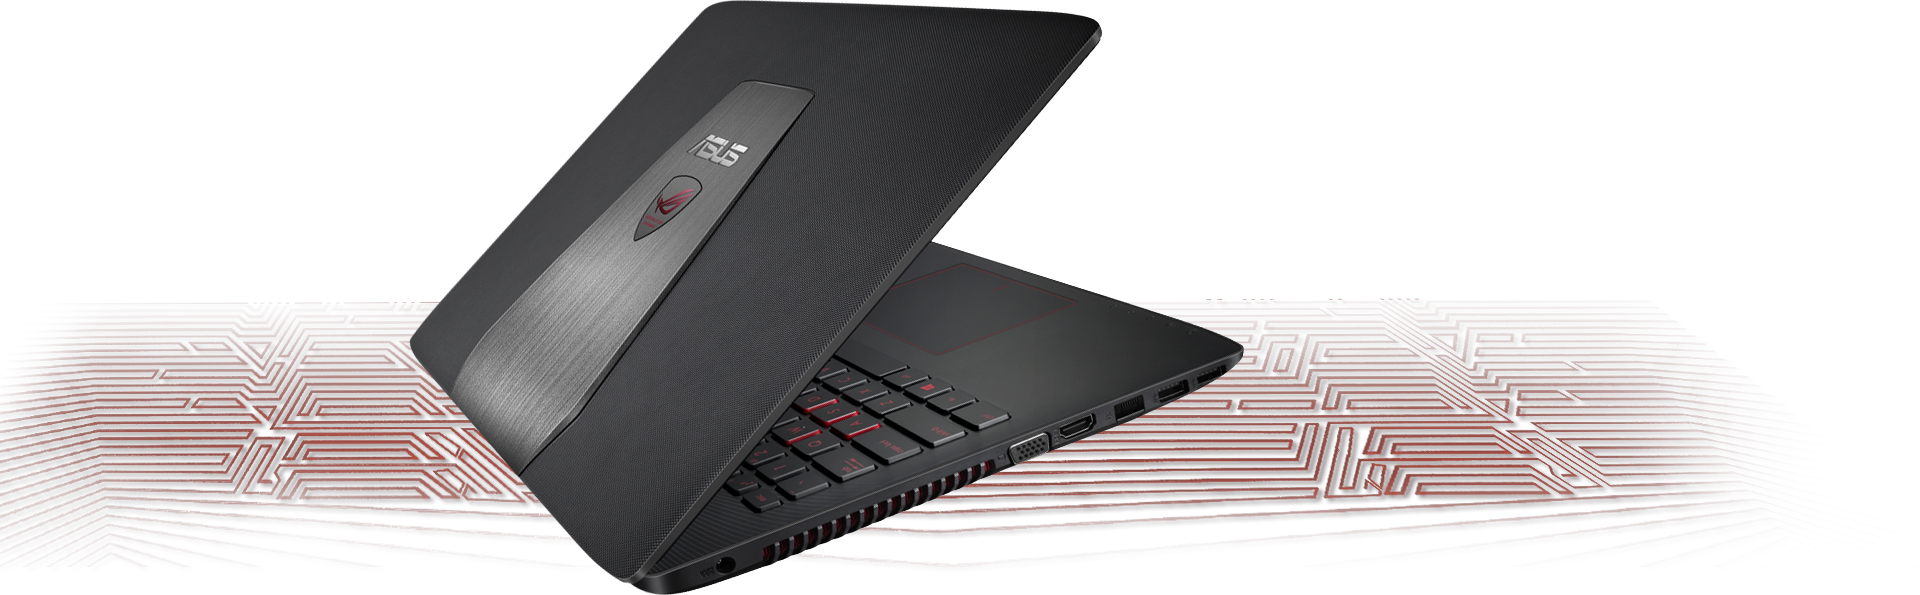 Asus rog gl552 driver download | asus supports.